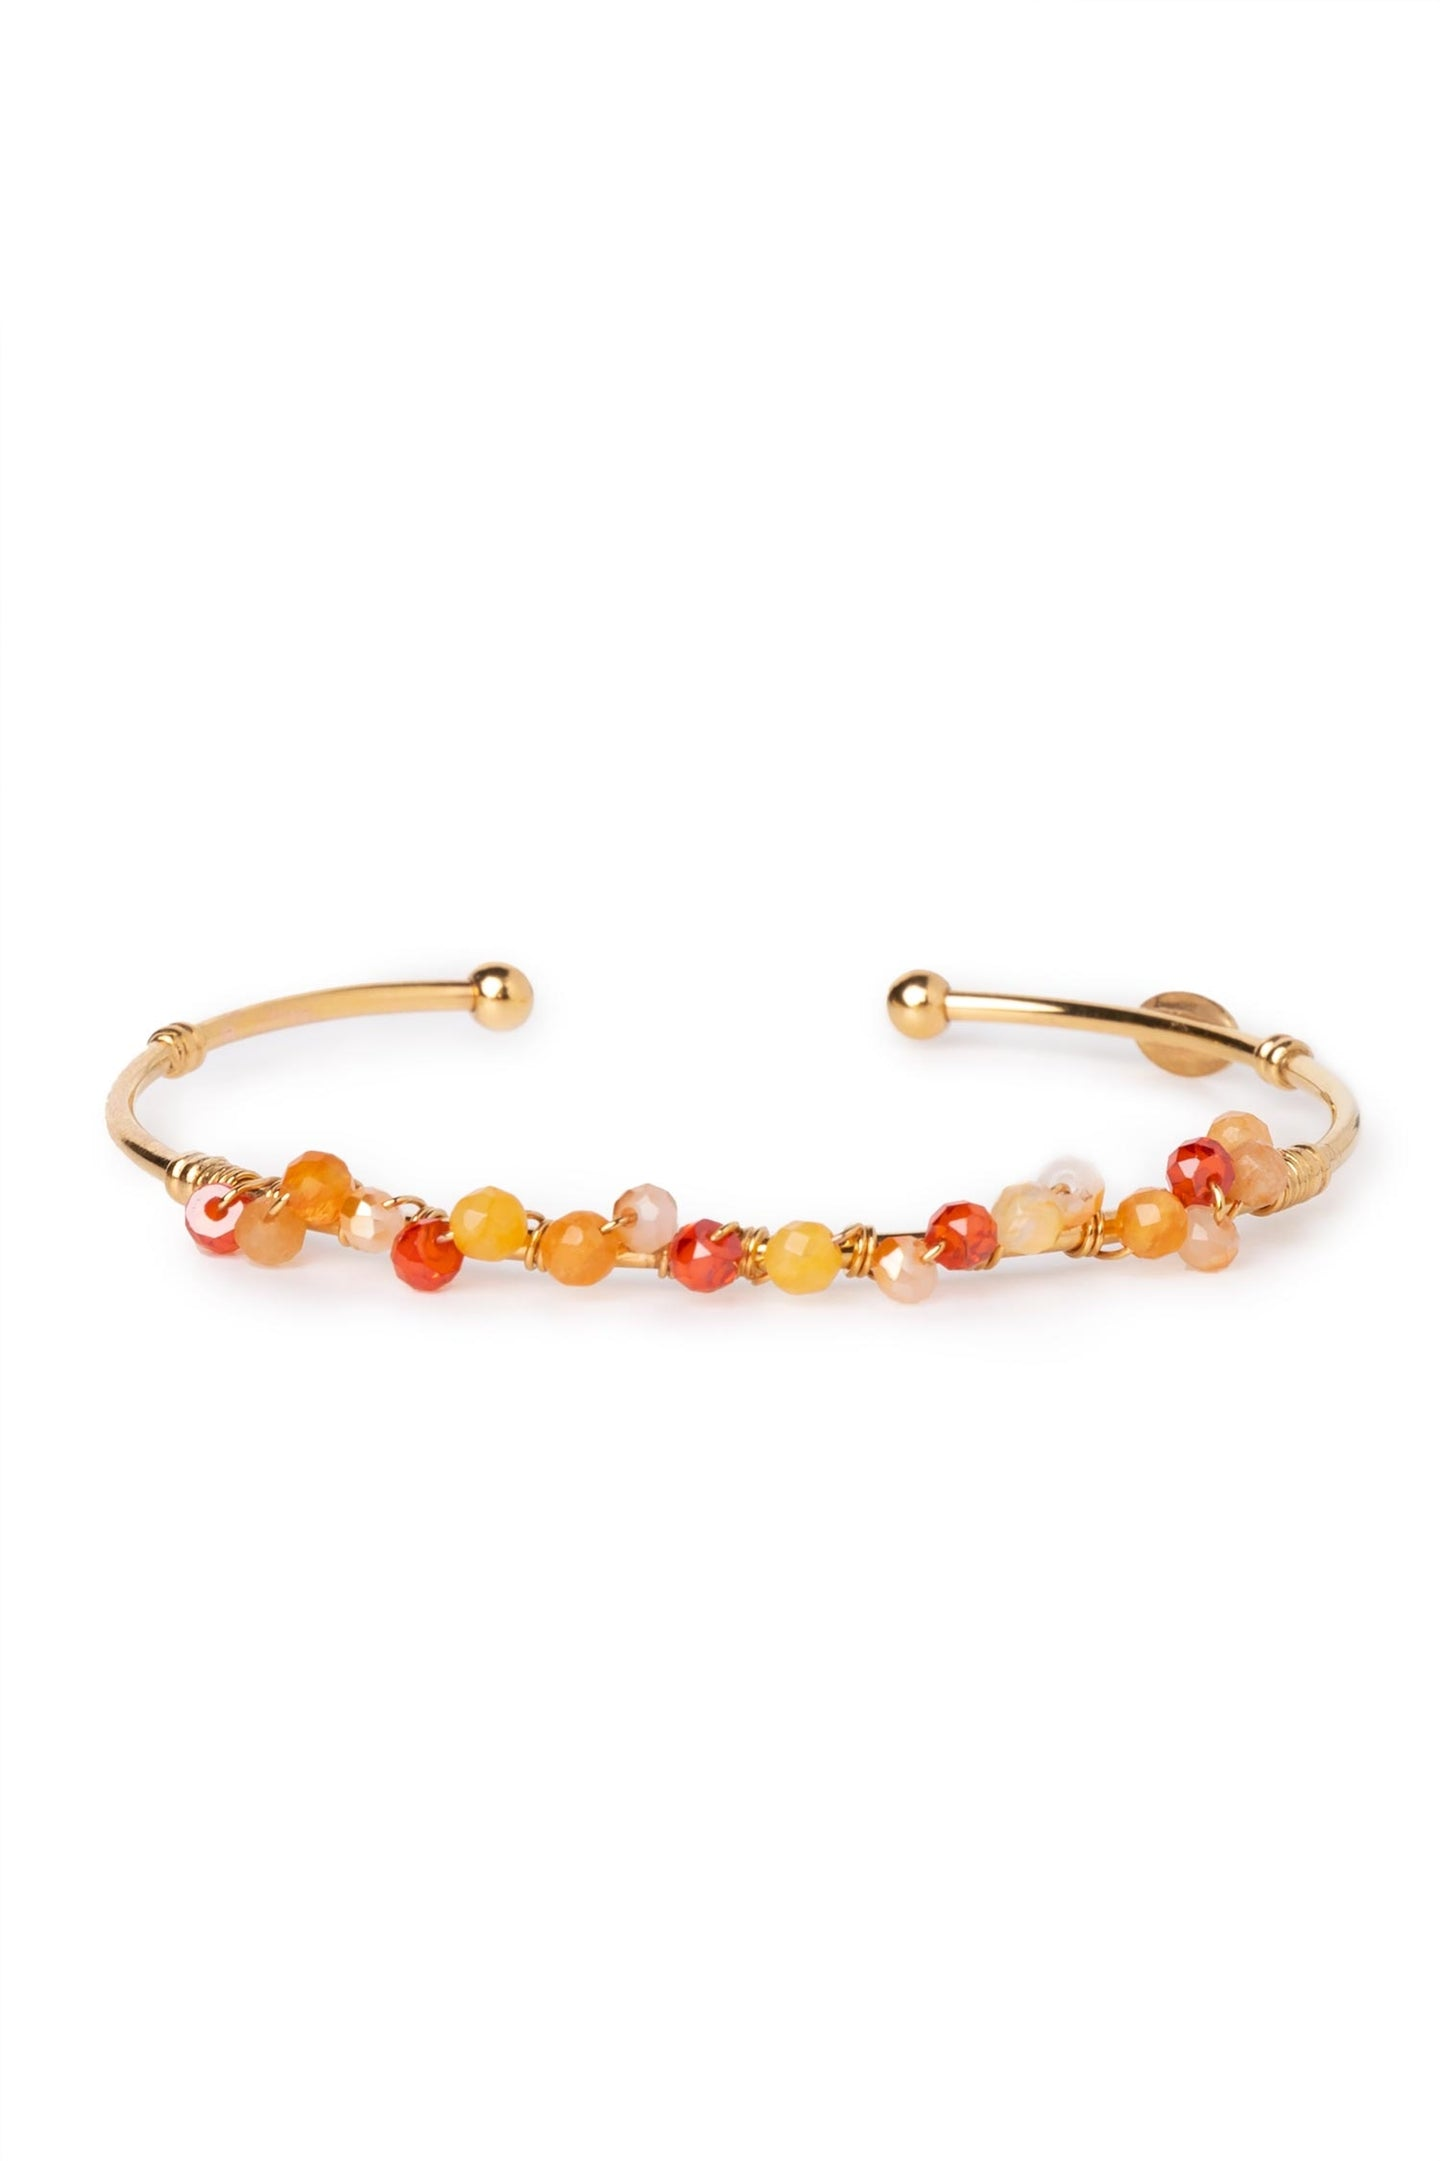 Calliope 24k Gold Plated Bead Bracelet Metal